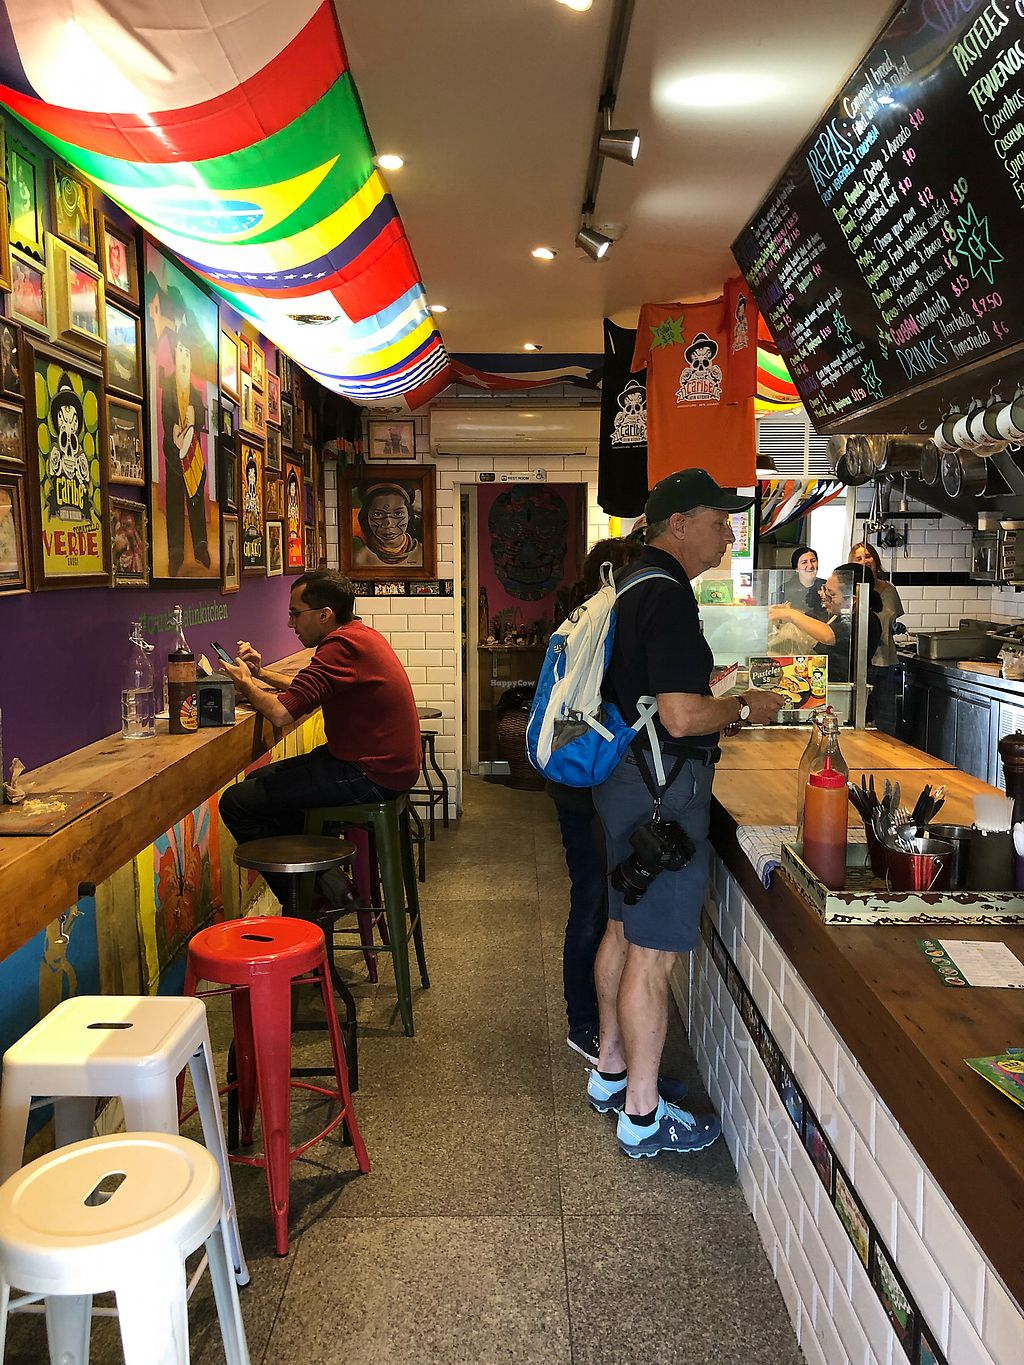 """Photo of Caribe Latin Kitchen  by <a href=""""/members/profile/ben_eitel"""">ben_eitel</a> <br/>A warm Mexican-Latino feel <br/> March 11, 2018  - <a href='/contact/abuse/image/52953/369104'>Report</a>"""